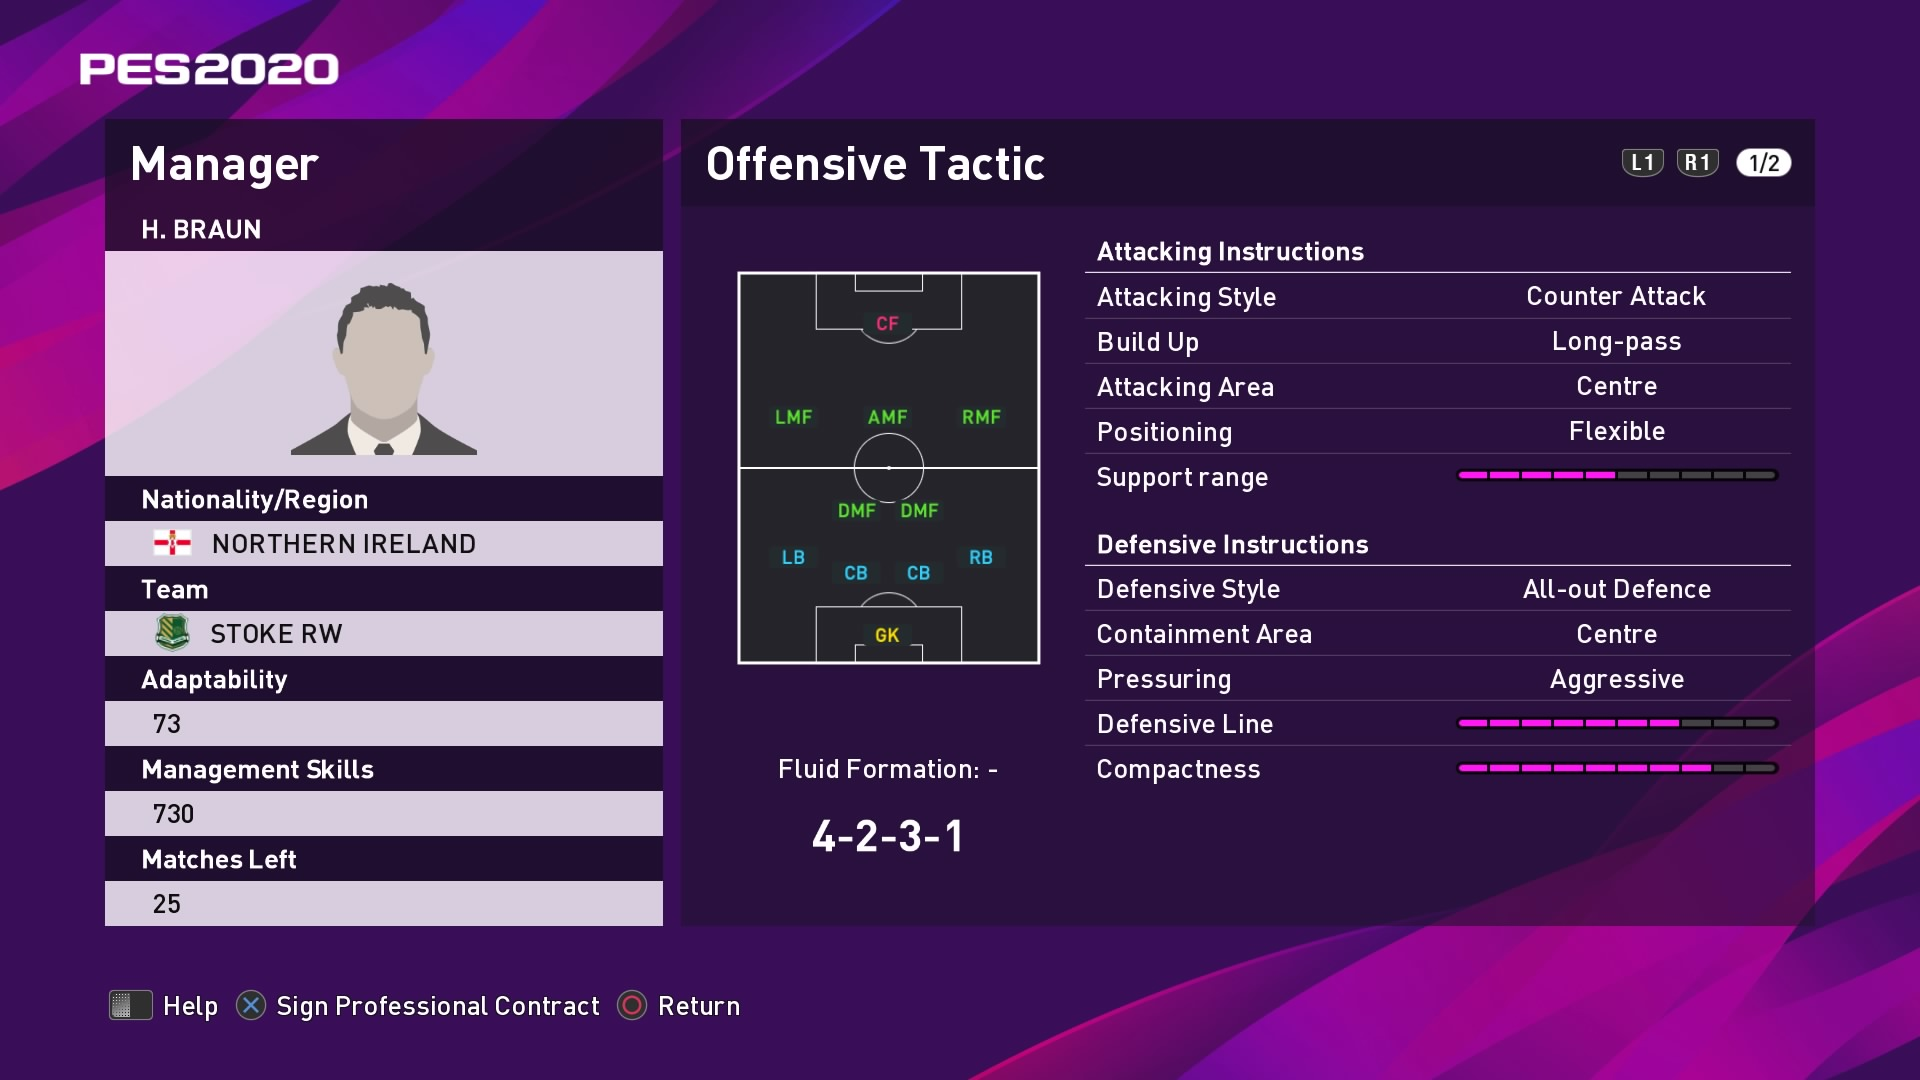 H. Braun (2) (Michael O'Neill) Offensive Tactic in PES 2020 myClub